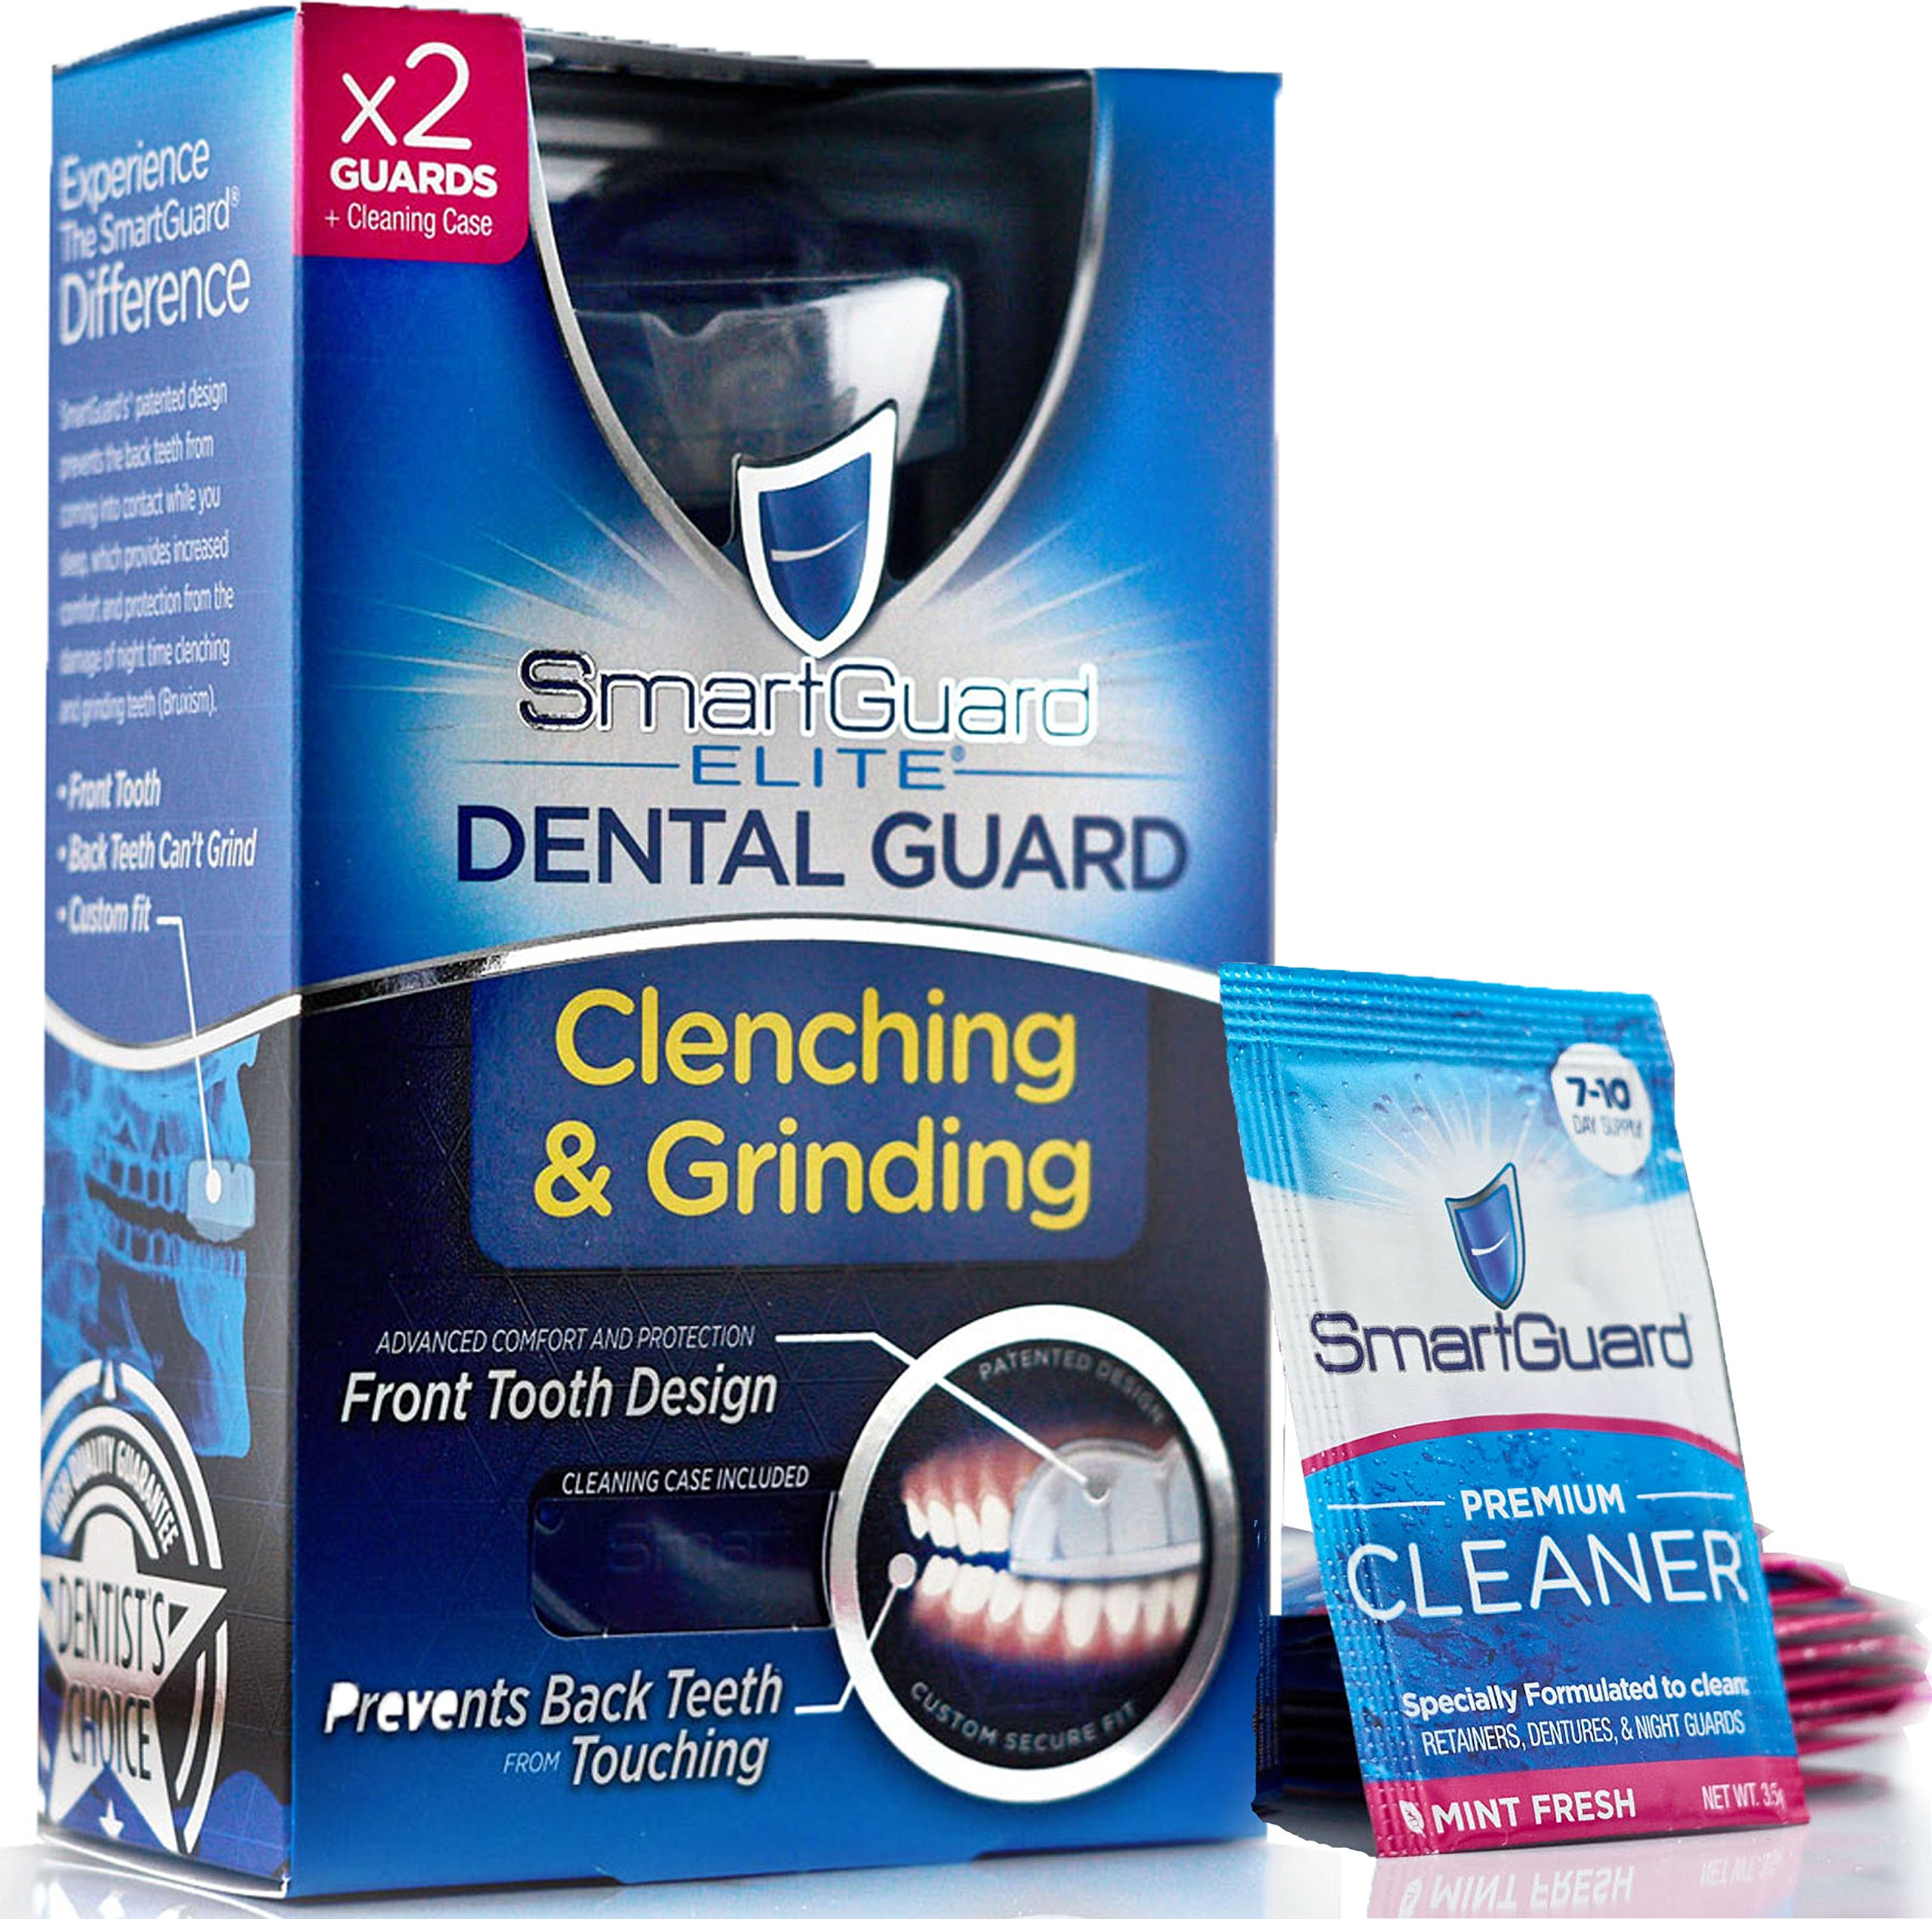 SmartGuard Elite Dental Guard (2 Guards) + Travel Case & 2 Months of Cleaning Crystals – TMJ Dentist Designed Night Guard for Clenching & Grinding. Made in USA